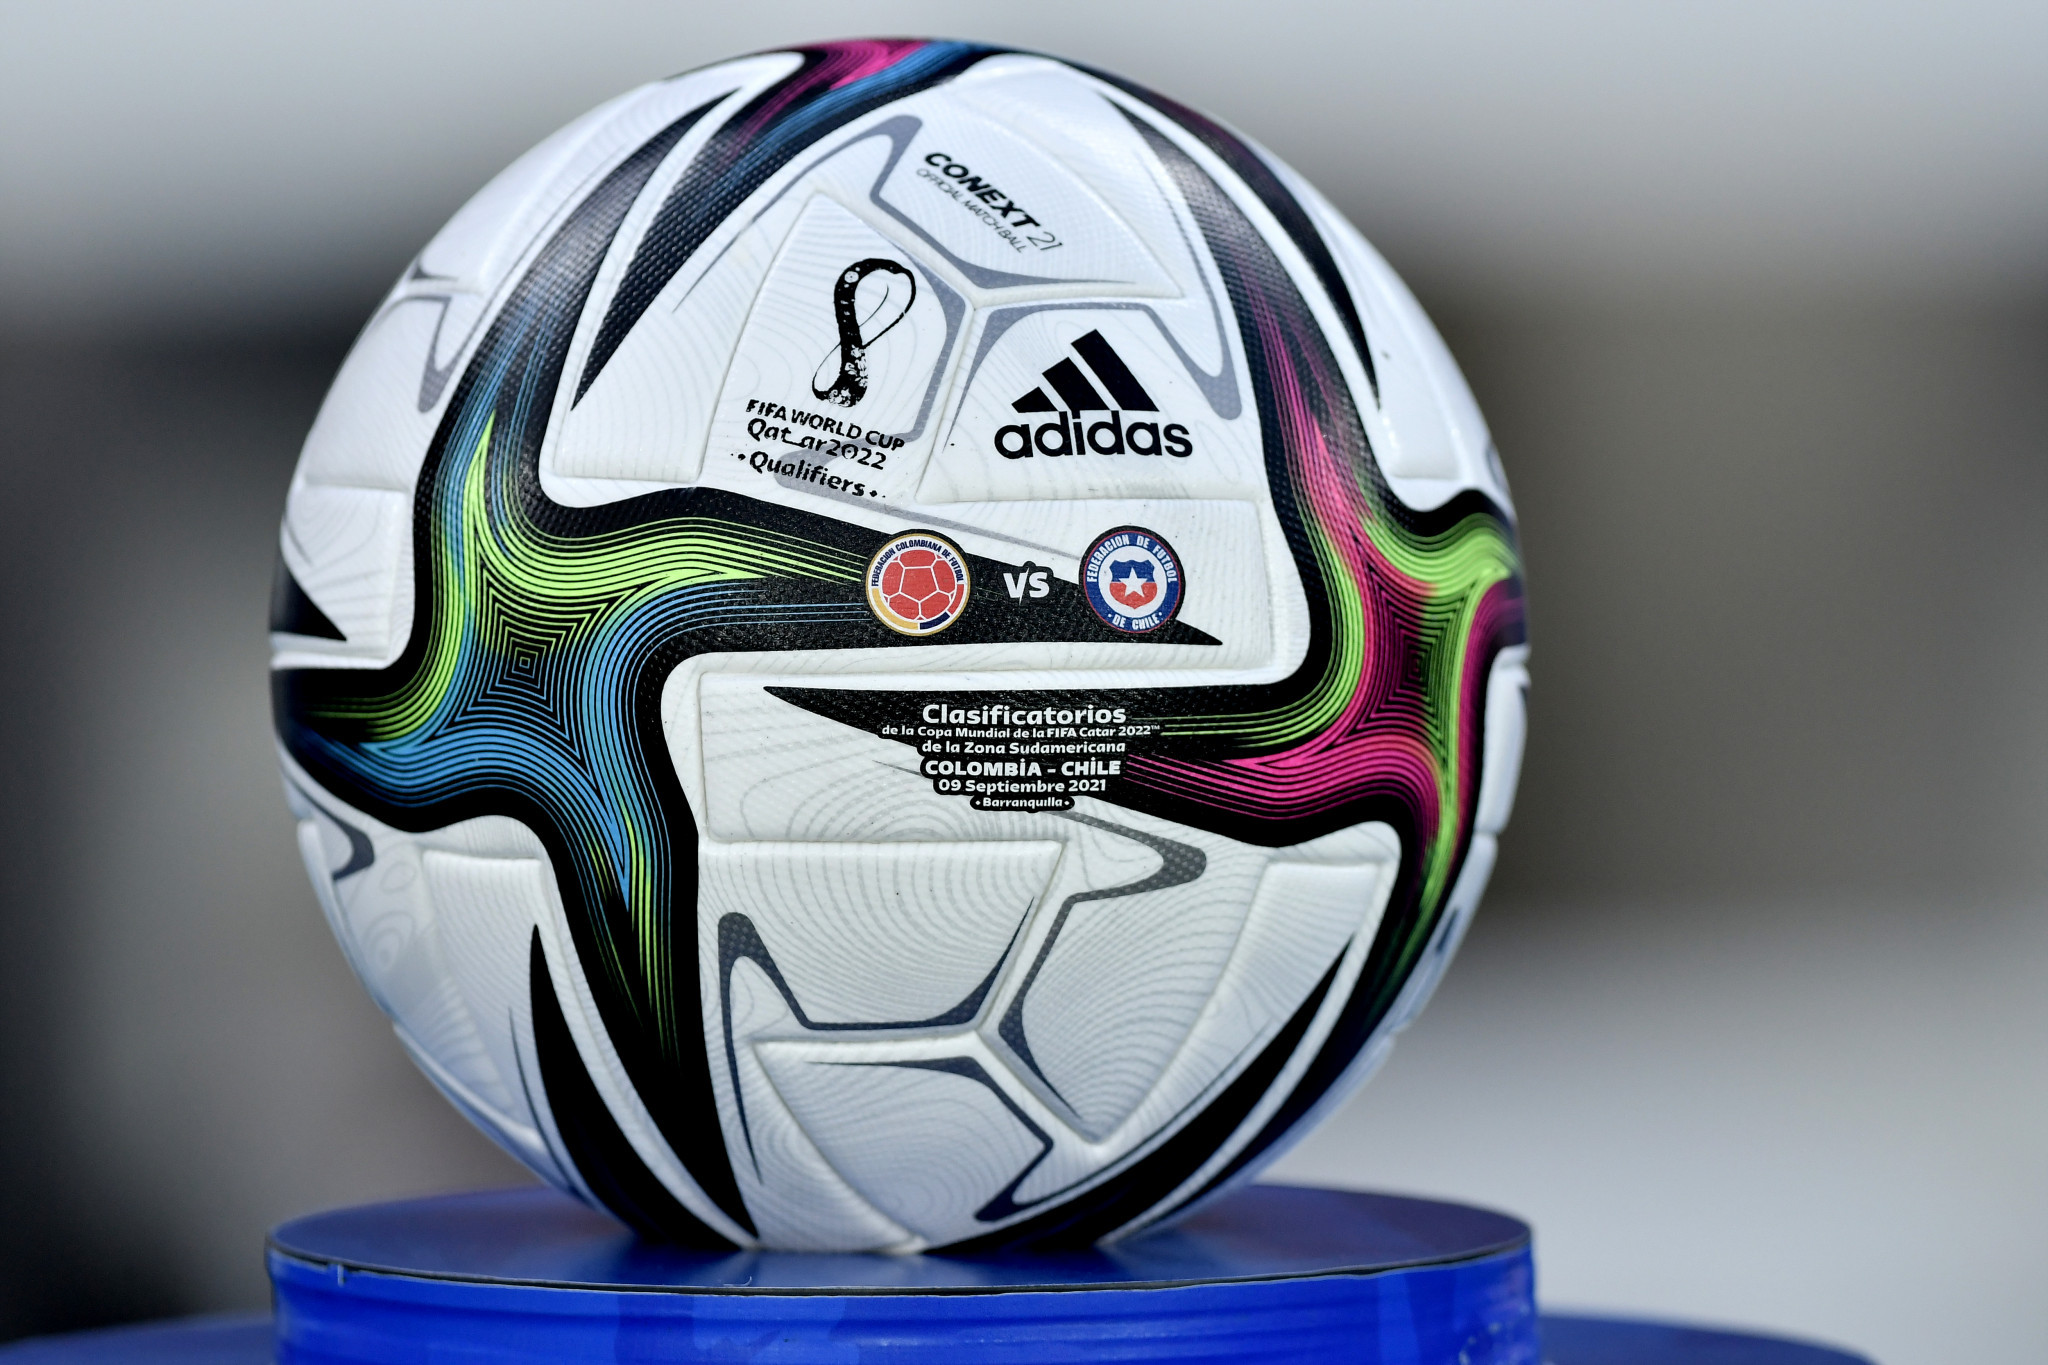 CONMEBOL joins UEFA in opposing proposal for biennial FIFA World Cups